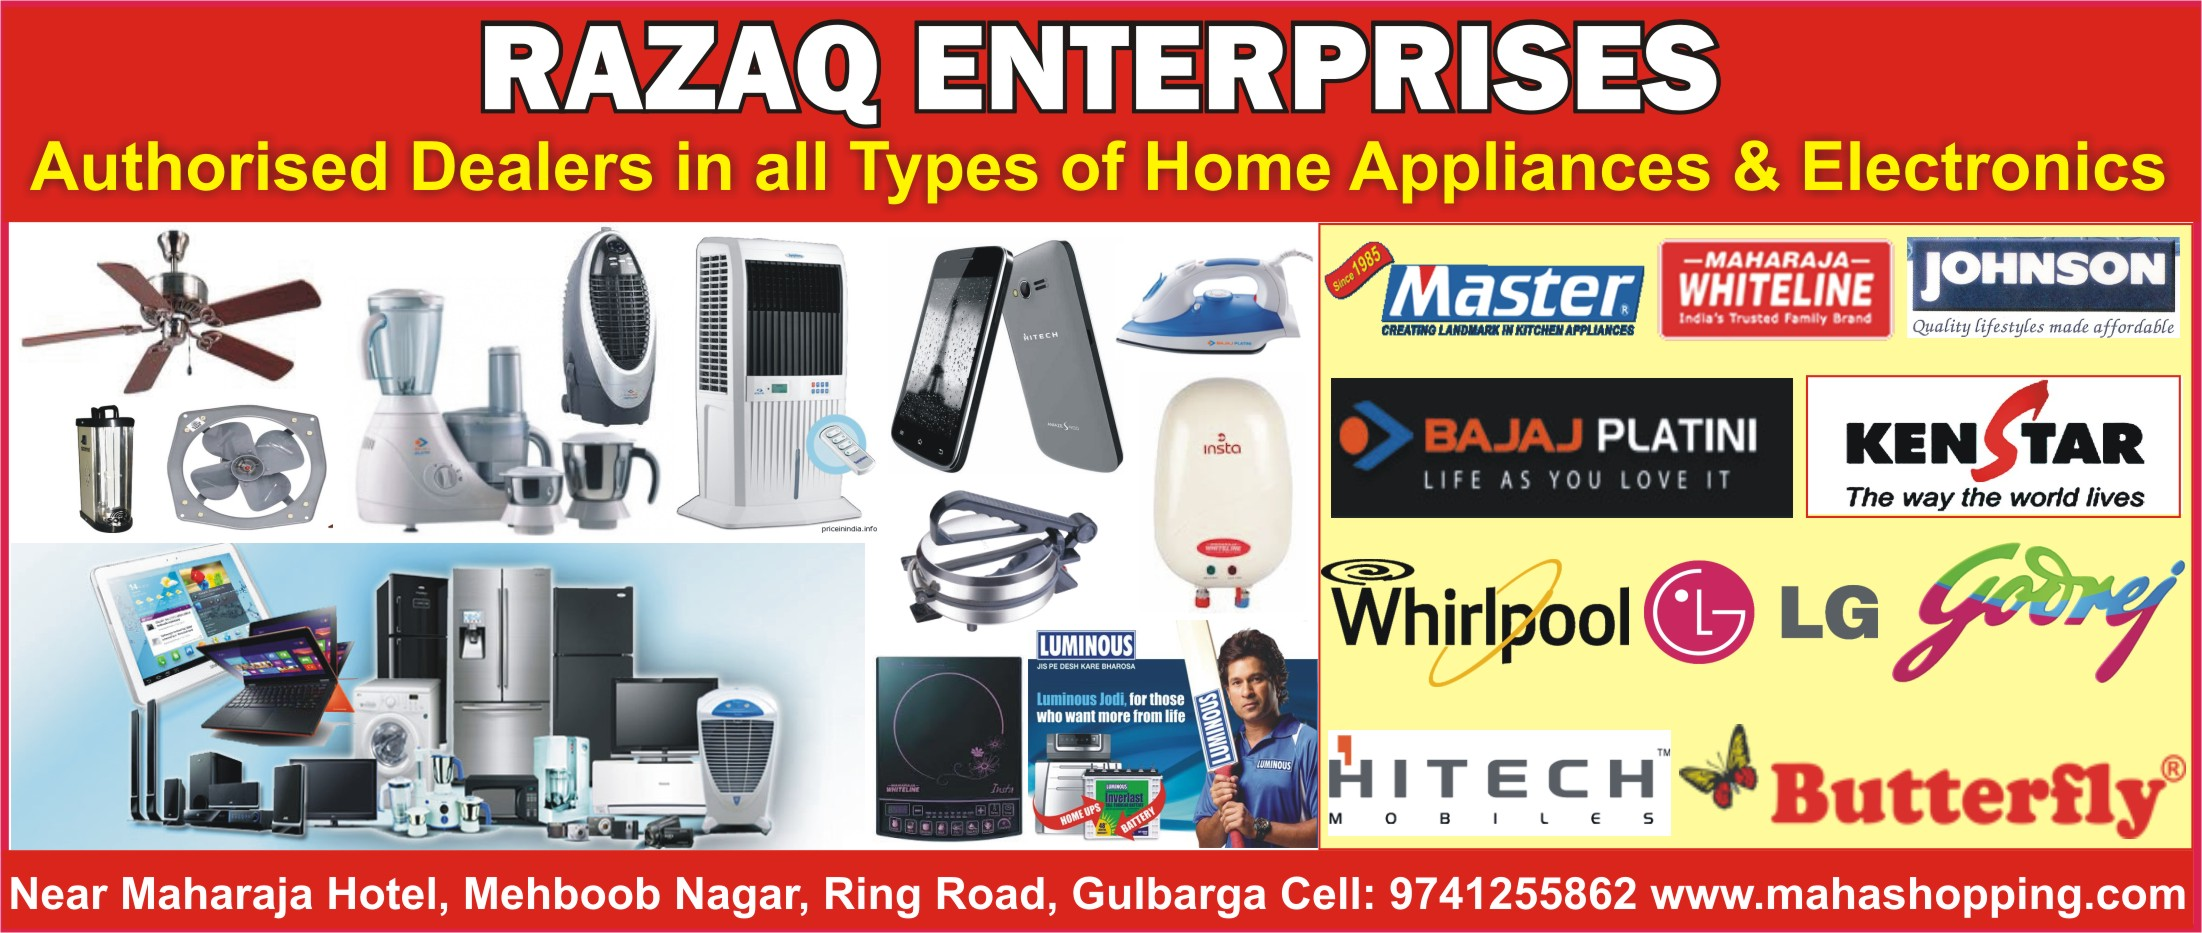 RAZAQ ENTERPRISES